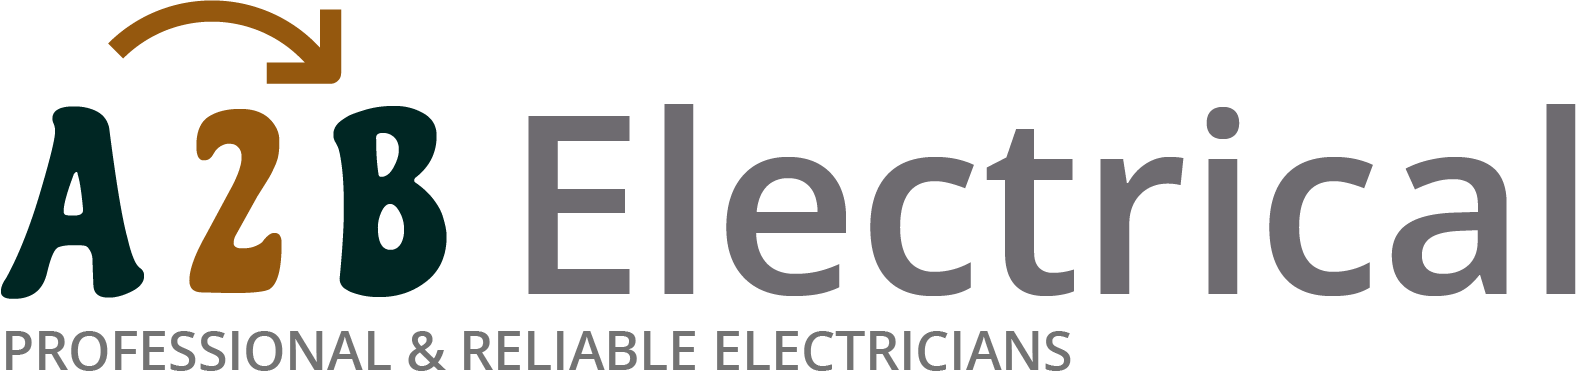 If you have electrical wiring problems in Norbury, we can provide an electrician to have a look for you.